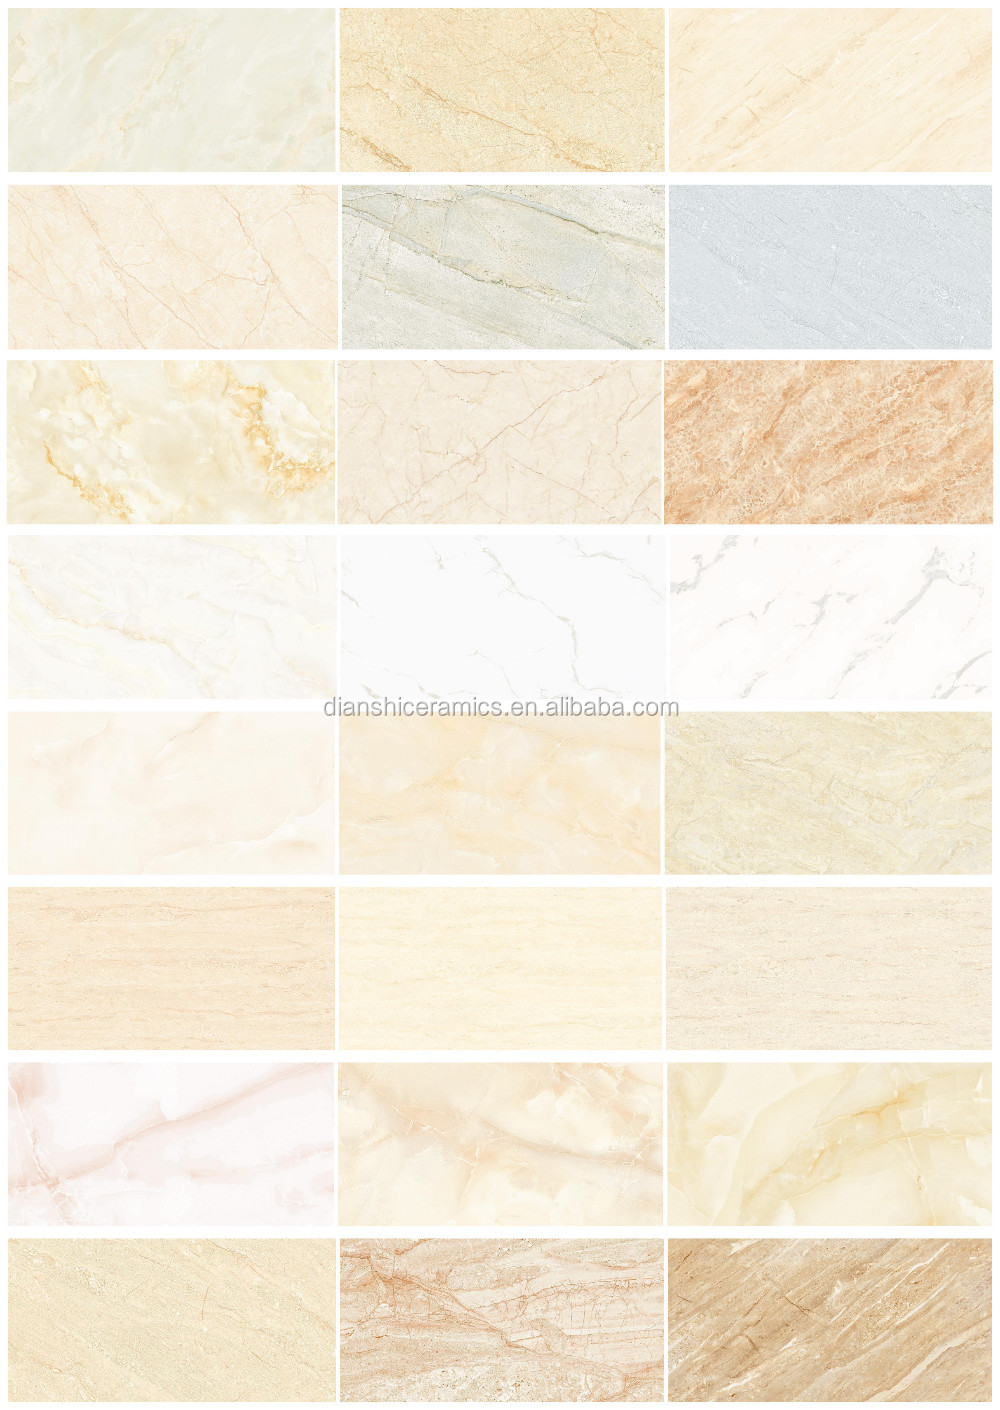 Ceramic tiles material and wall tiles tile type white marble buy ceramic tiles material and wall tiles tile type white marble dailygadgetfo Gallery